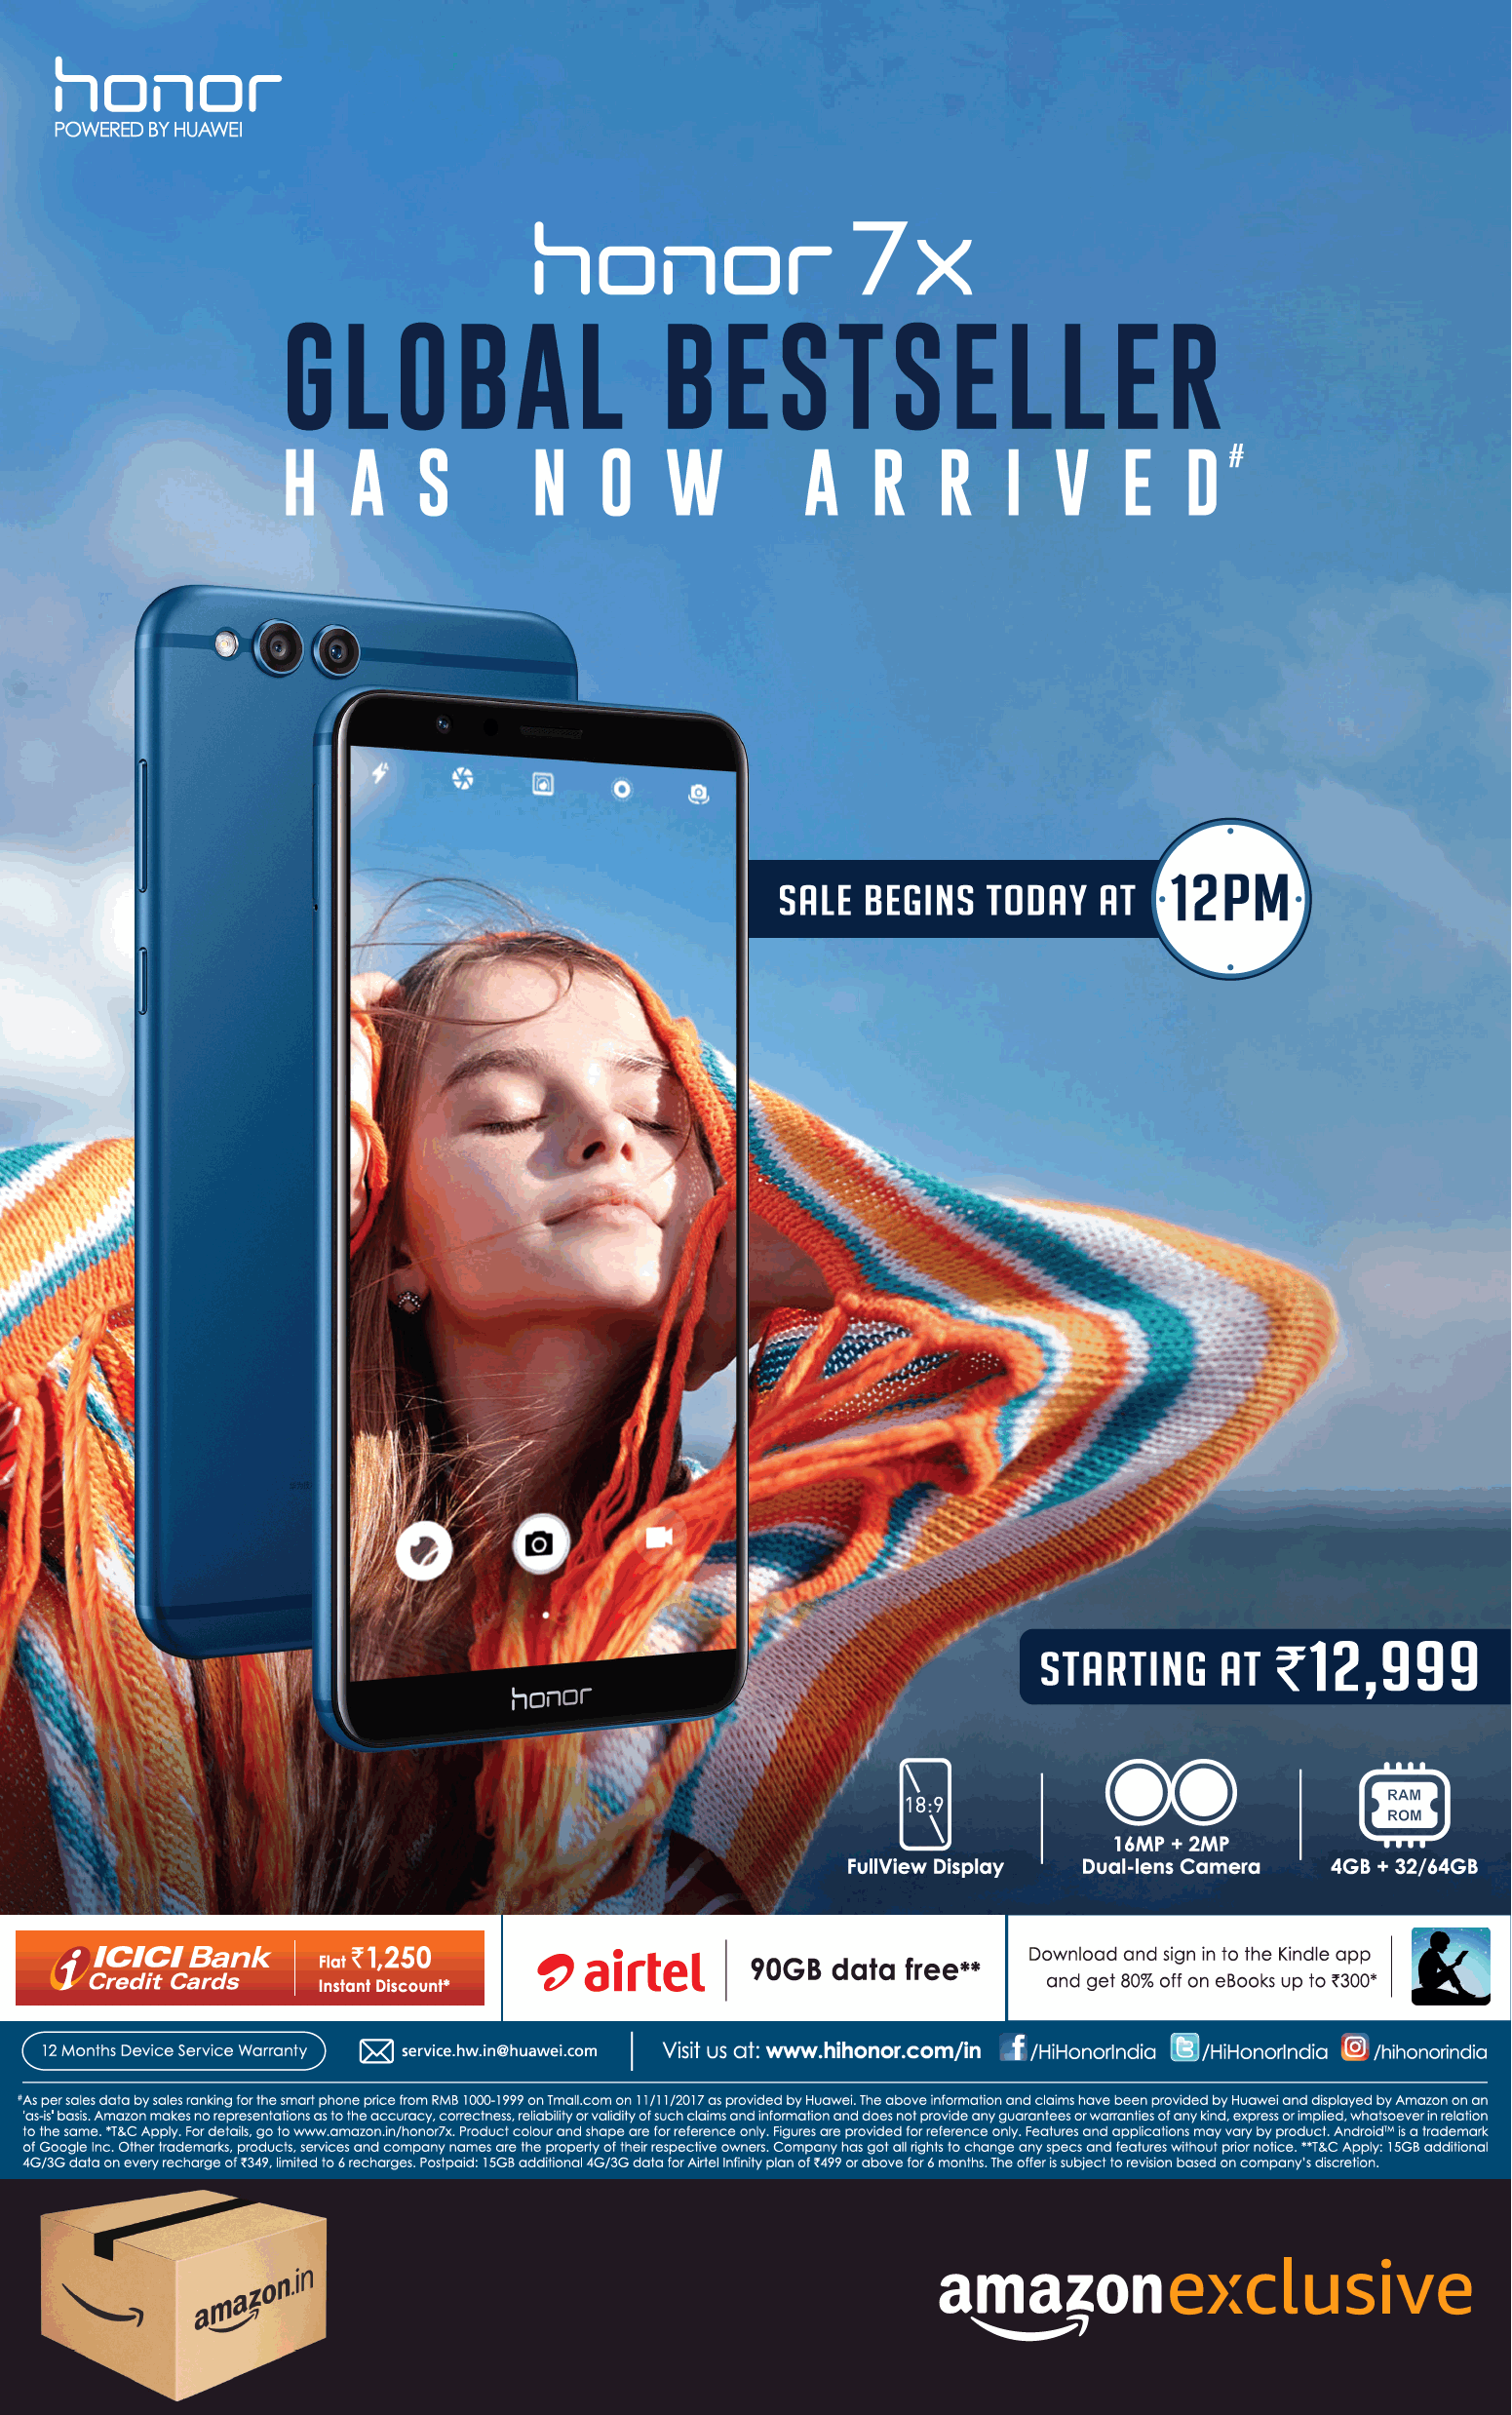 Honor 7X mobile phone is an example of social proof advertising Technique